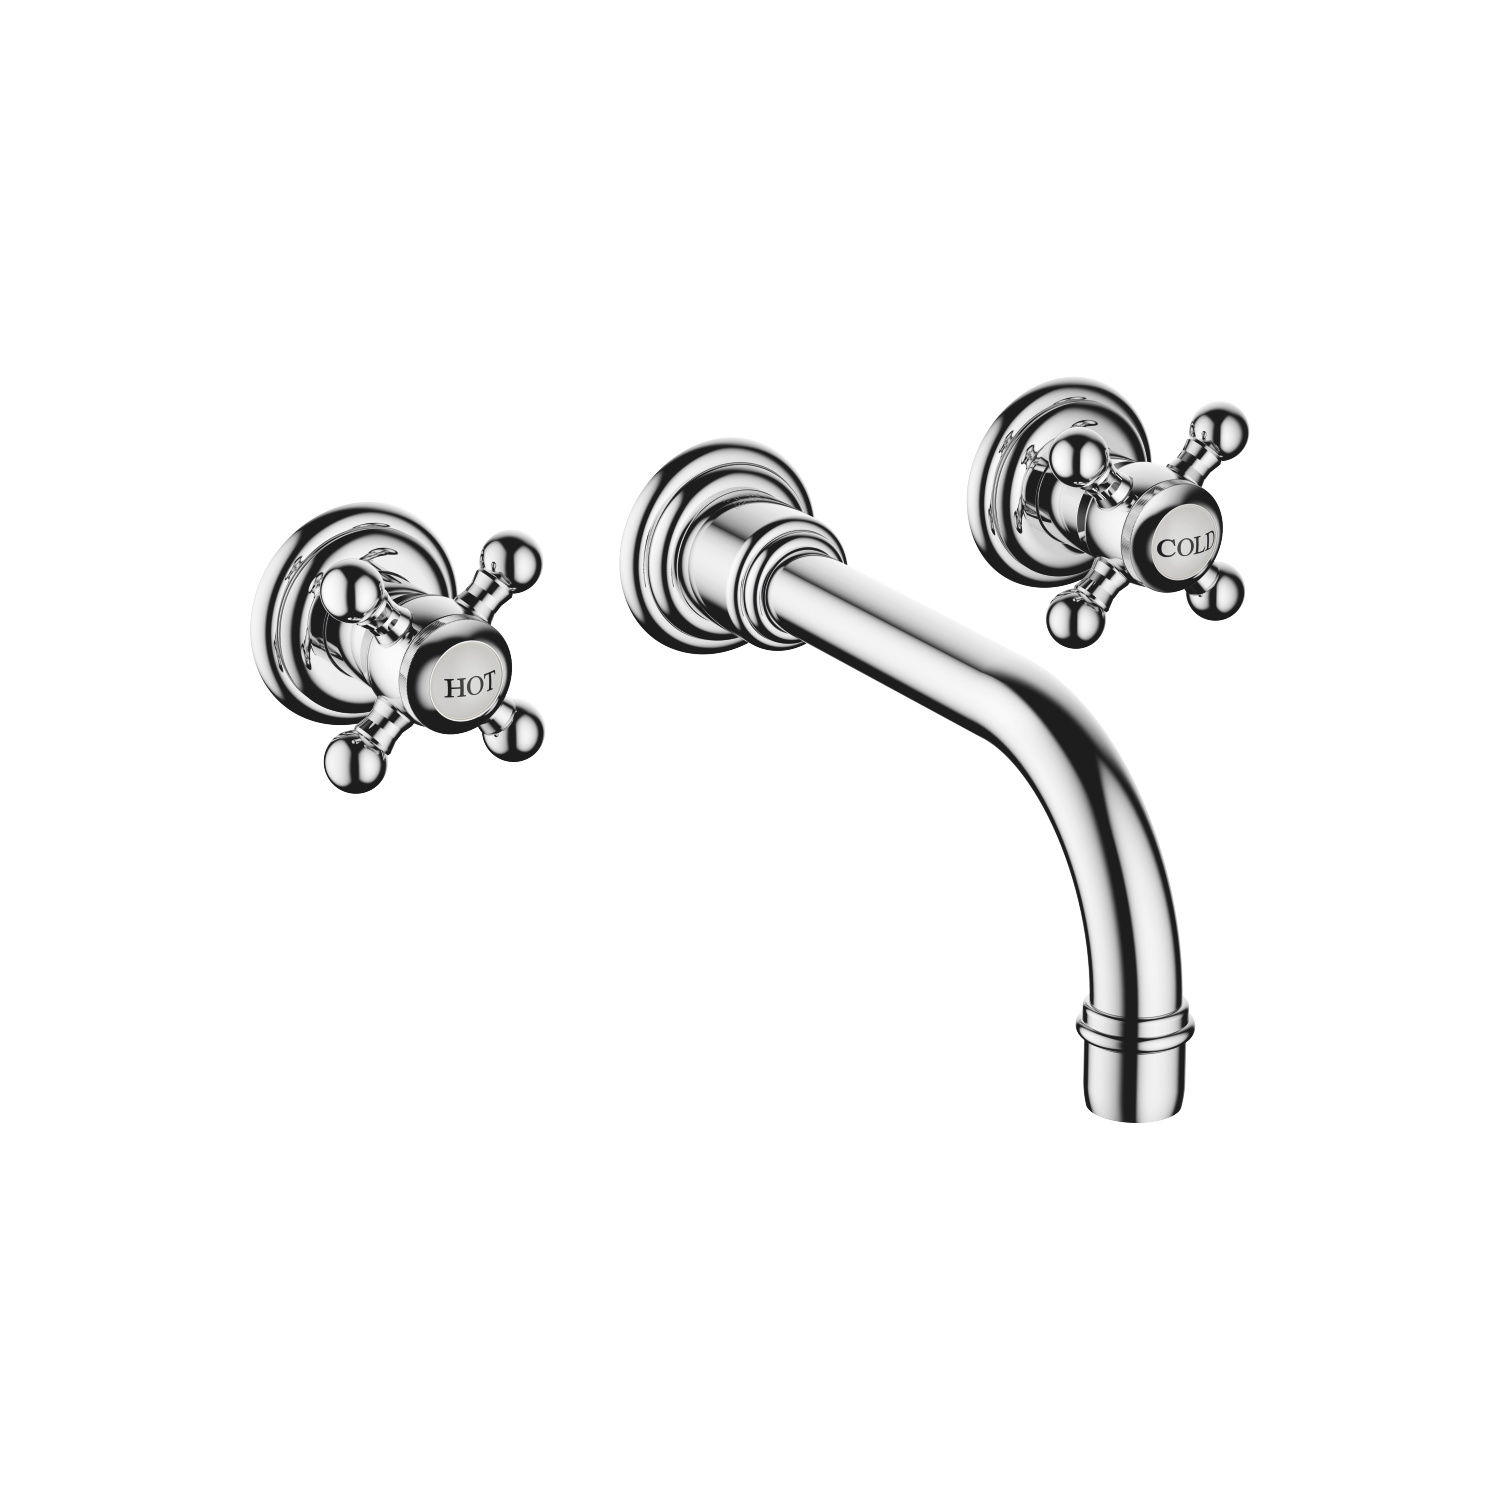 Wall-mounted three-hole lavatory mixer without drain - Brushed Durabrass - 36 712 361-28 0010